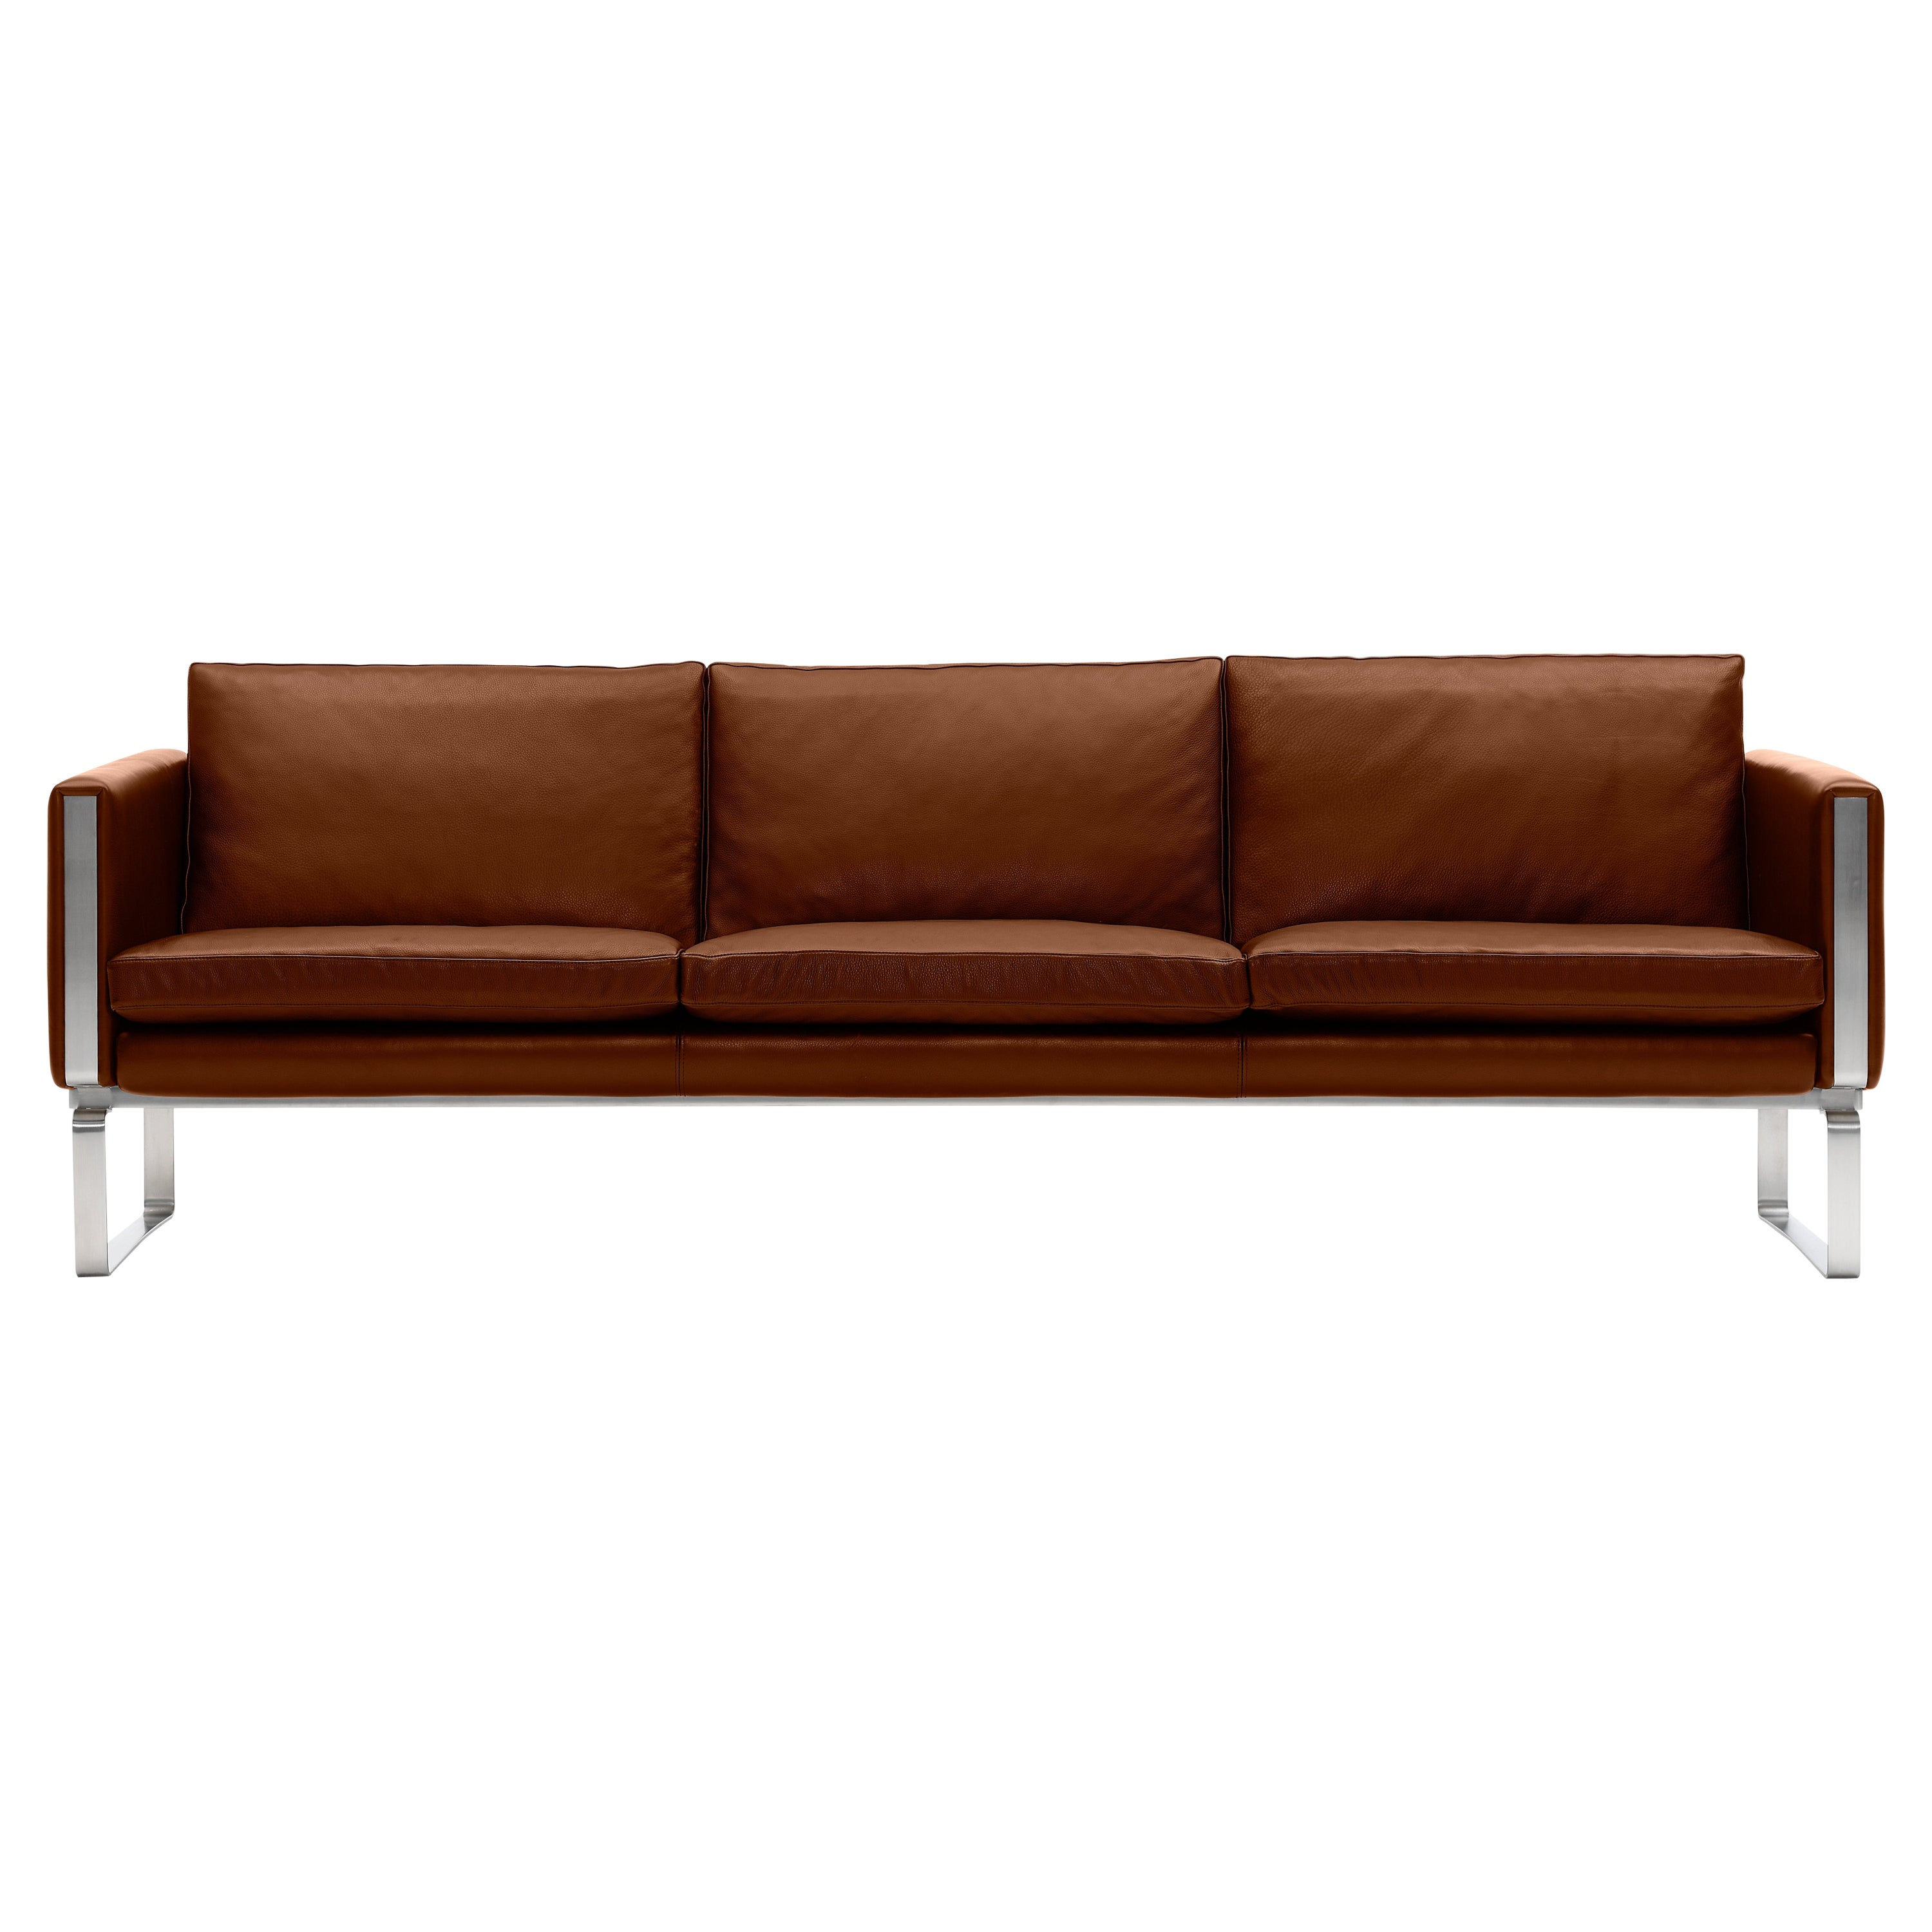 CH103 3-Seat Sofa in Stainless Steel Frame with Leather Seat by Hans J. Wegner